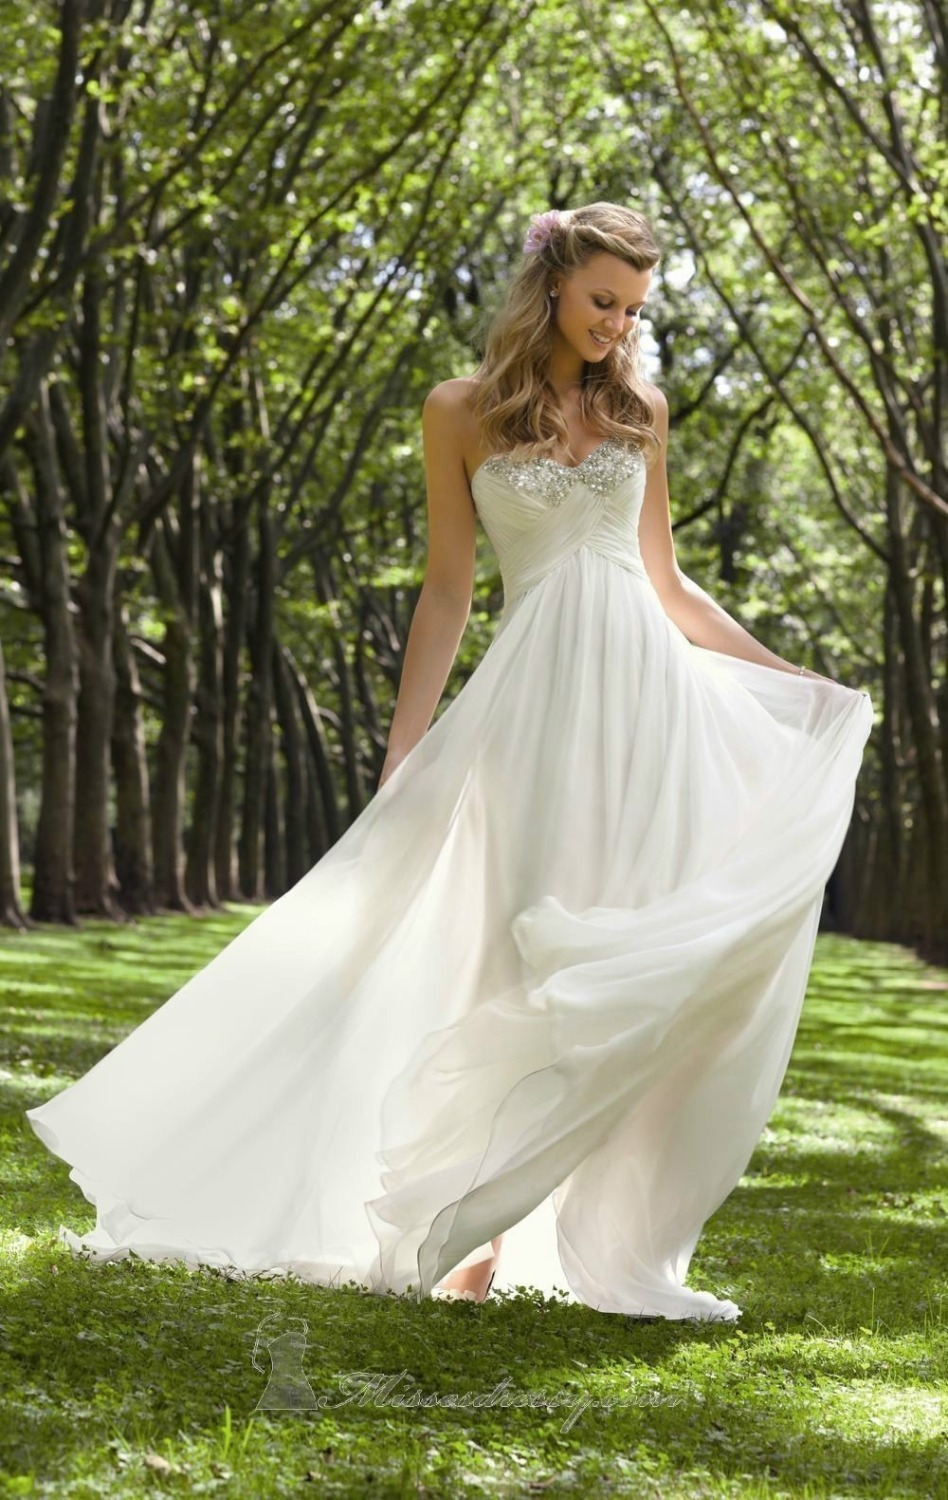 Compare Prices on Wedding Dress Clearance- Online Shopping/Buy Low ...